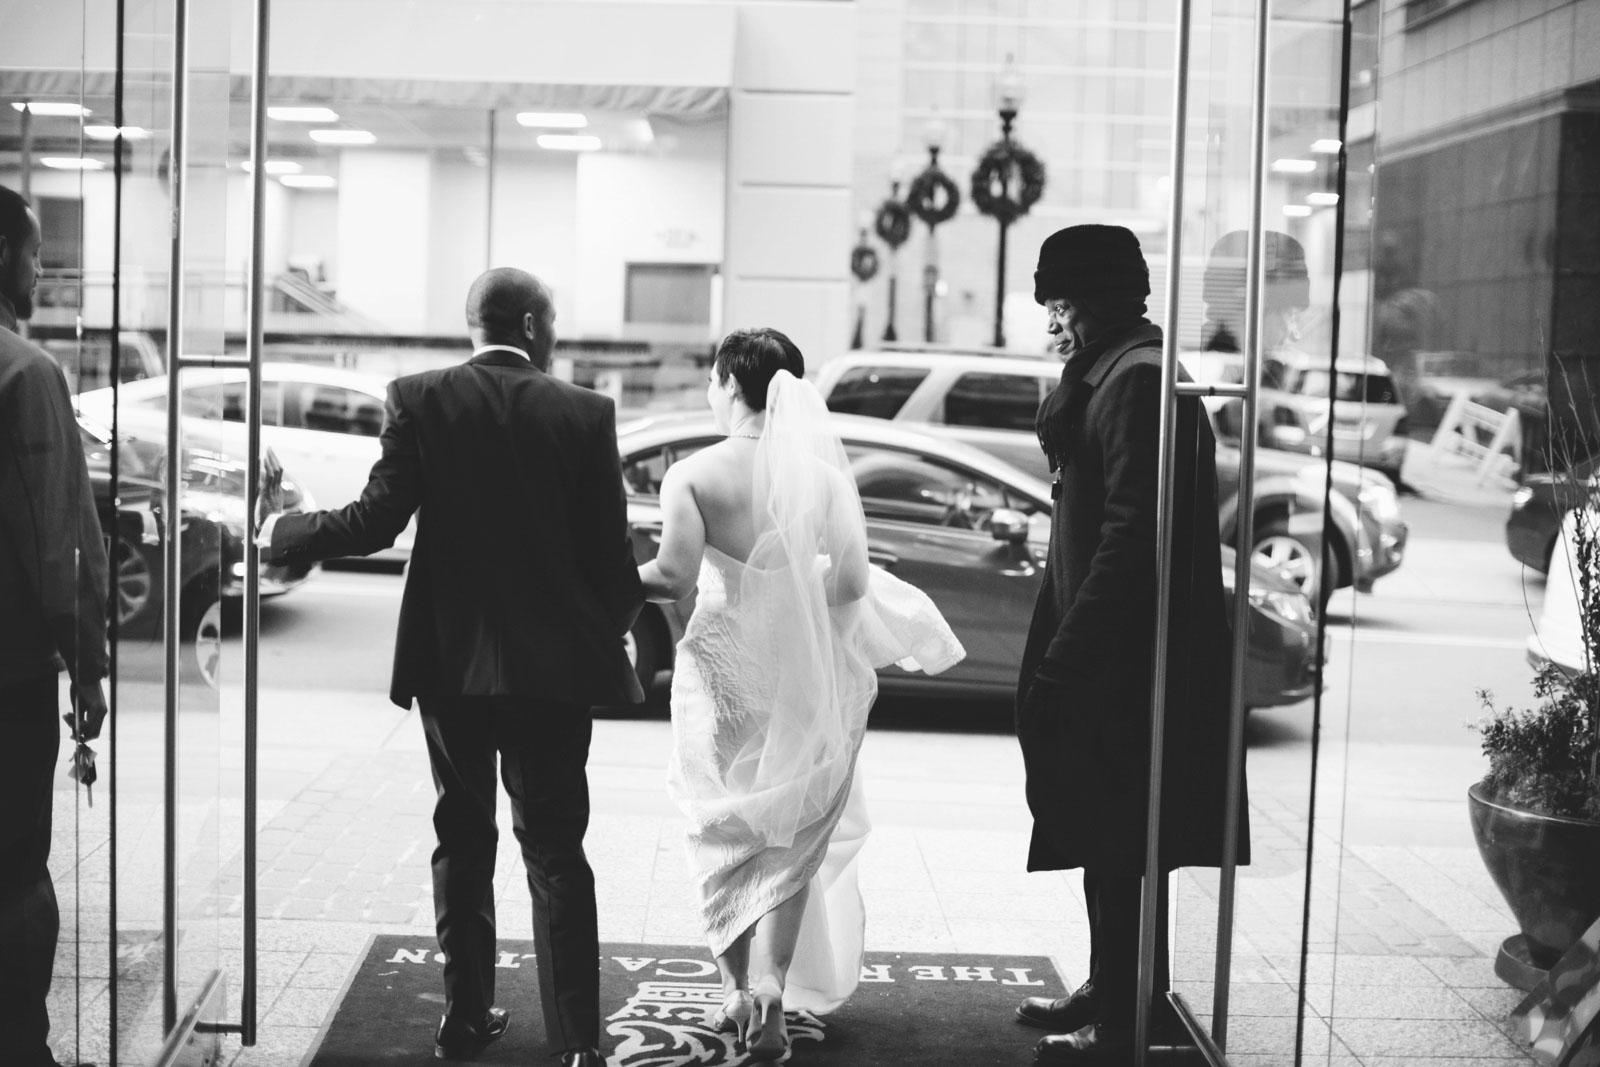 black and white shot of bride and groom from behind walking through entryway to hotel